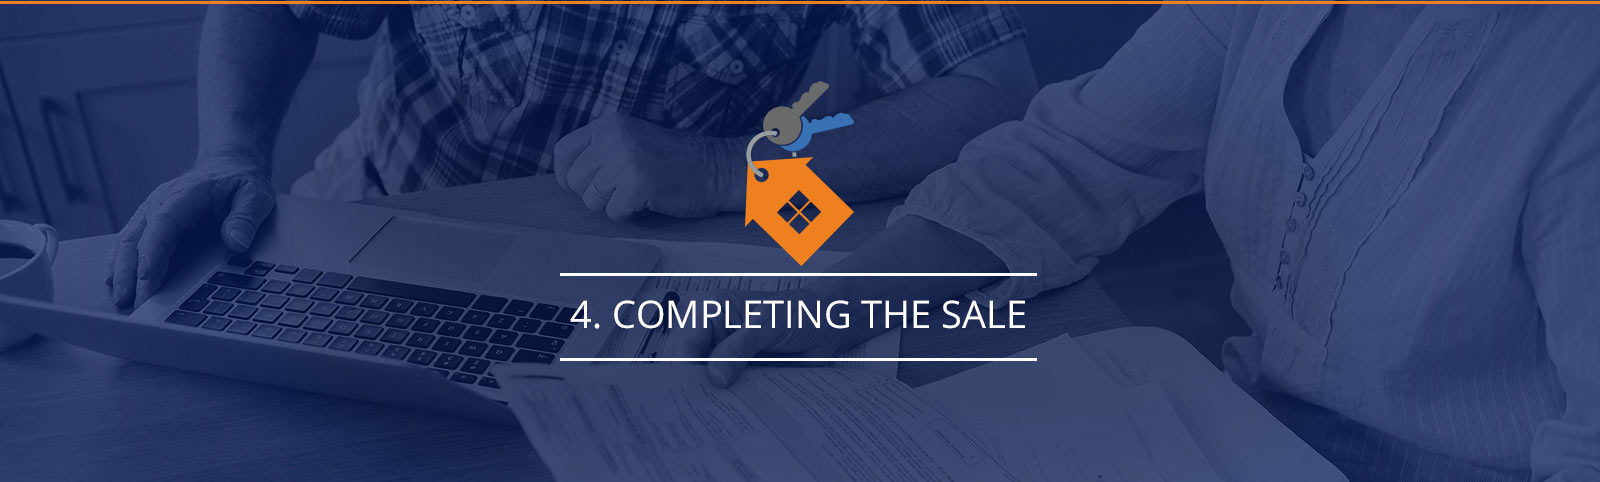 Completing the sale